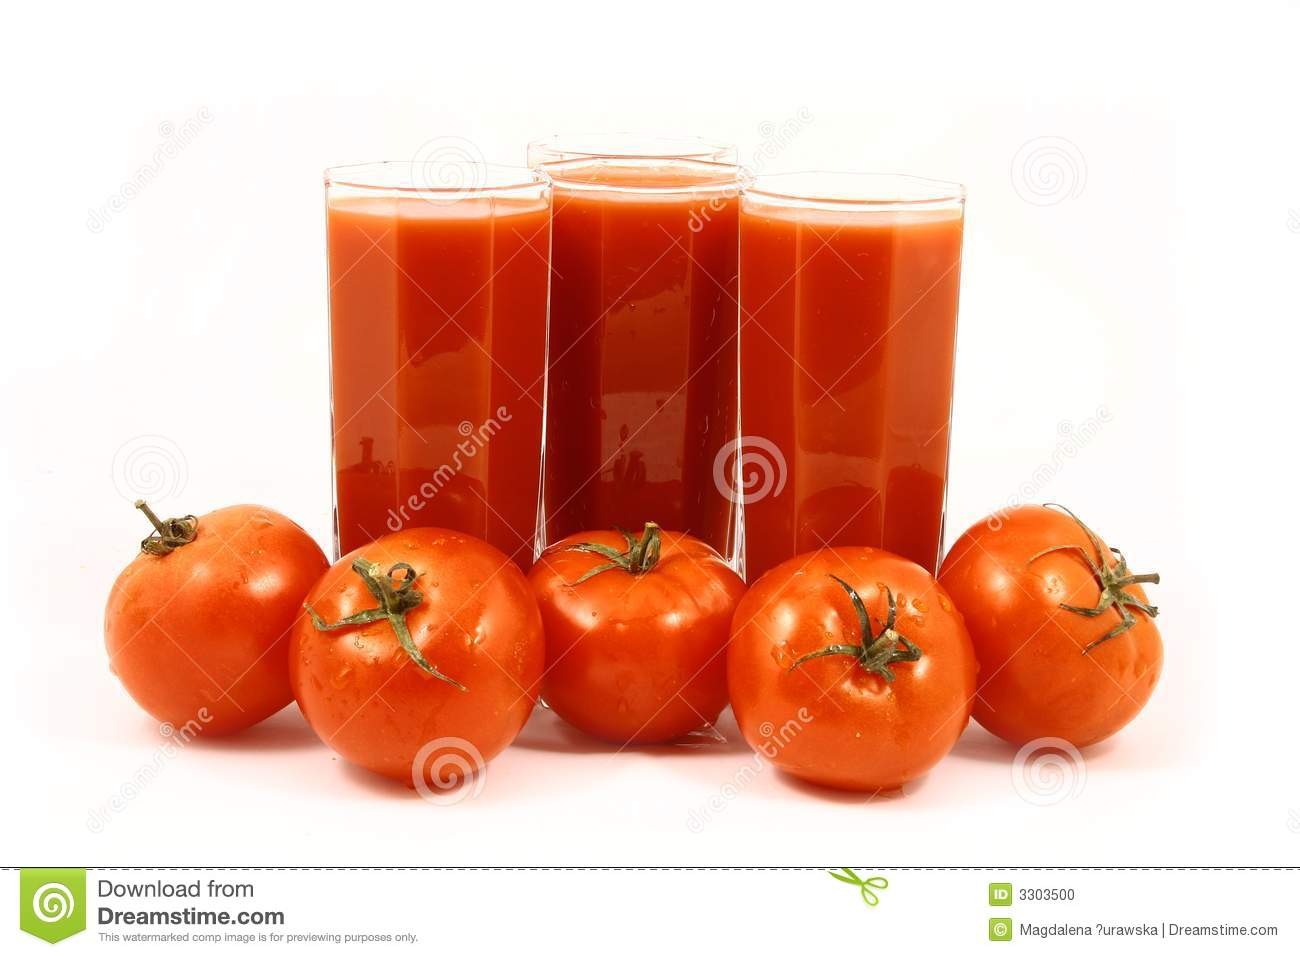 how to make tomato juice to drink